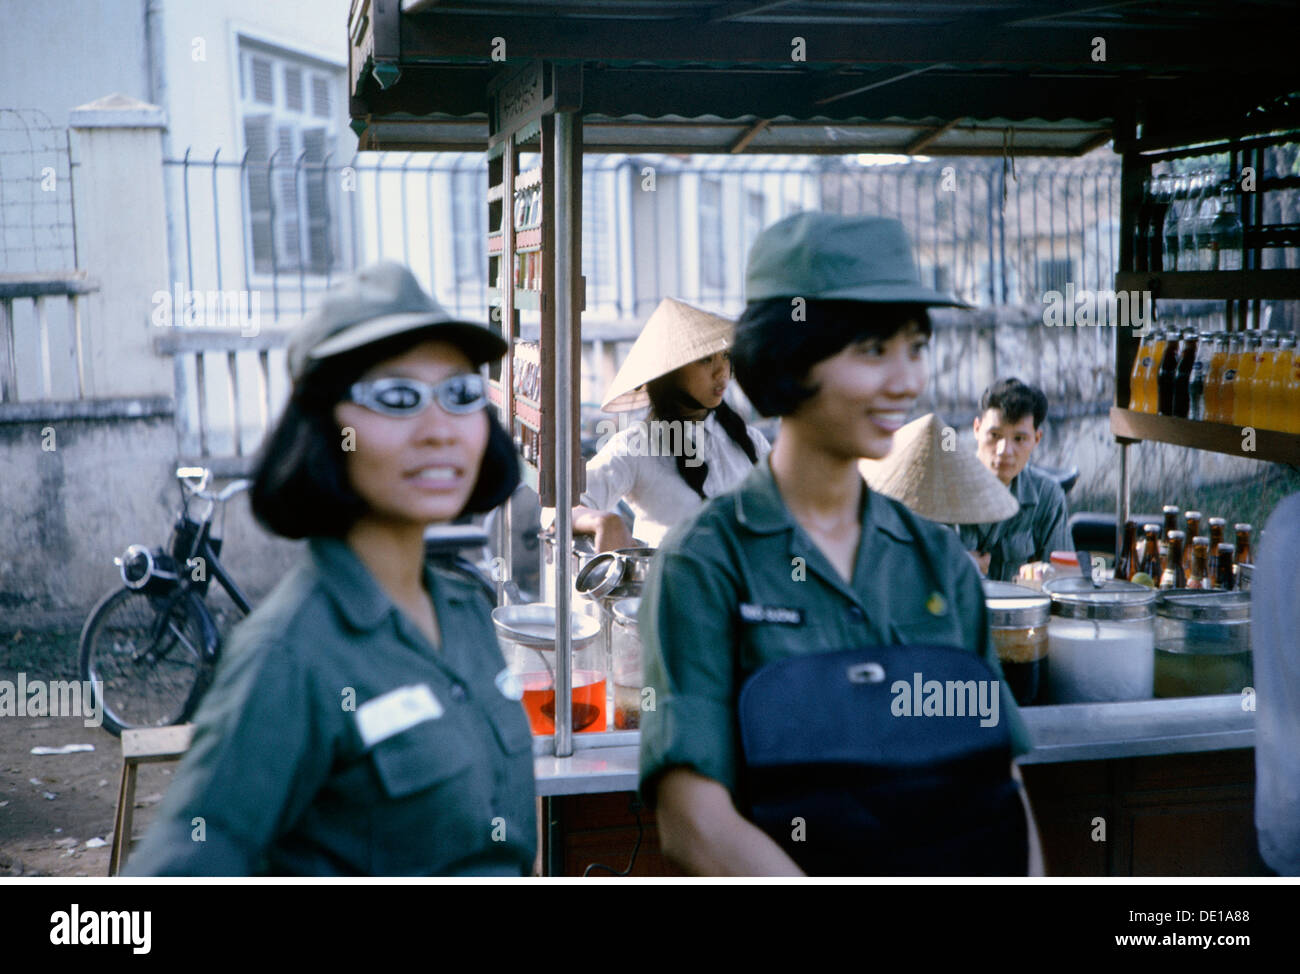 Vietnam War 1957 - 1975, Vietnamese servicewoman of the Women's Corps of the Army of the Republic of Vietnam at a berverage booth, South Vietnam, 1965, ARVN, military, Armed Forces, uniform, uniforms, beverages, beverage, booth, trade, South-East Asia, South East Asia, Southeast Asia, Far East, Viet Nam conflict, Viet Nam, Vietnam, war, wars, conflict, conflicts, 1960s, 60s, 20th century, people, group, groups, women, servicewoman, female soldier, servicewomen, female soldiers, historic, historical, Additional-Rights-Clearences-NA - Stock Image